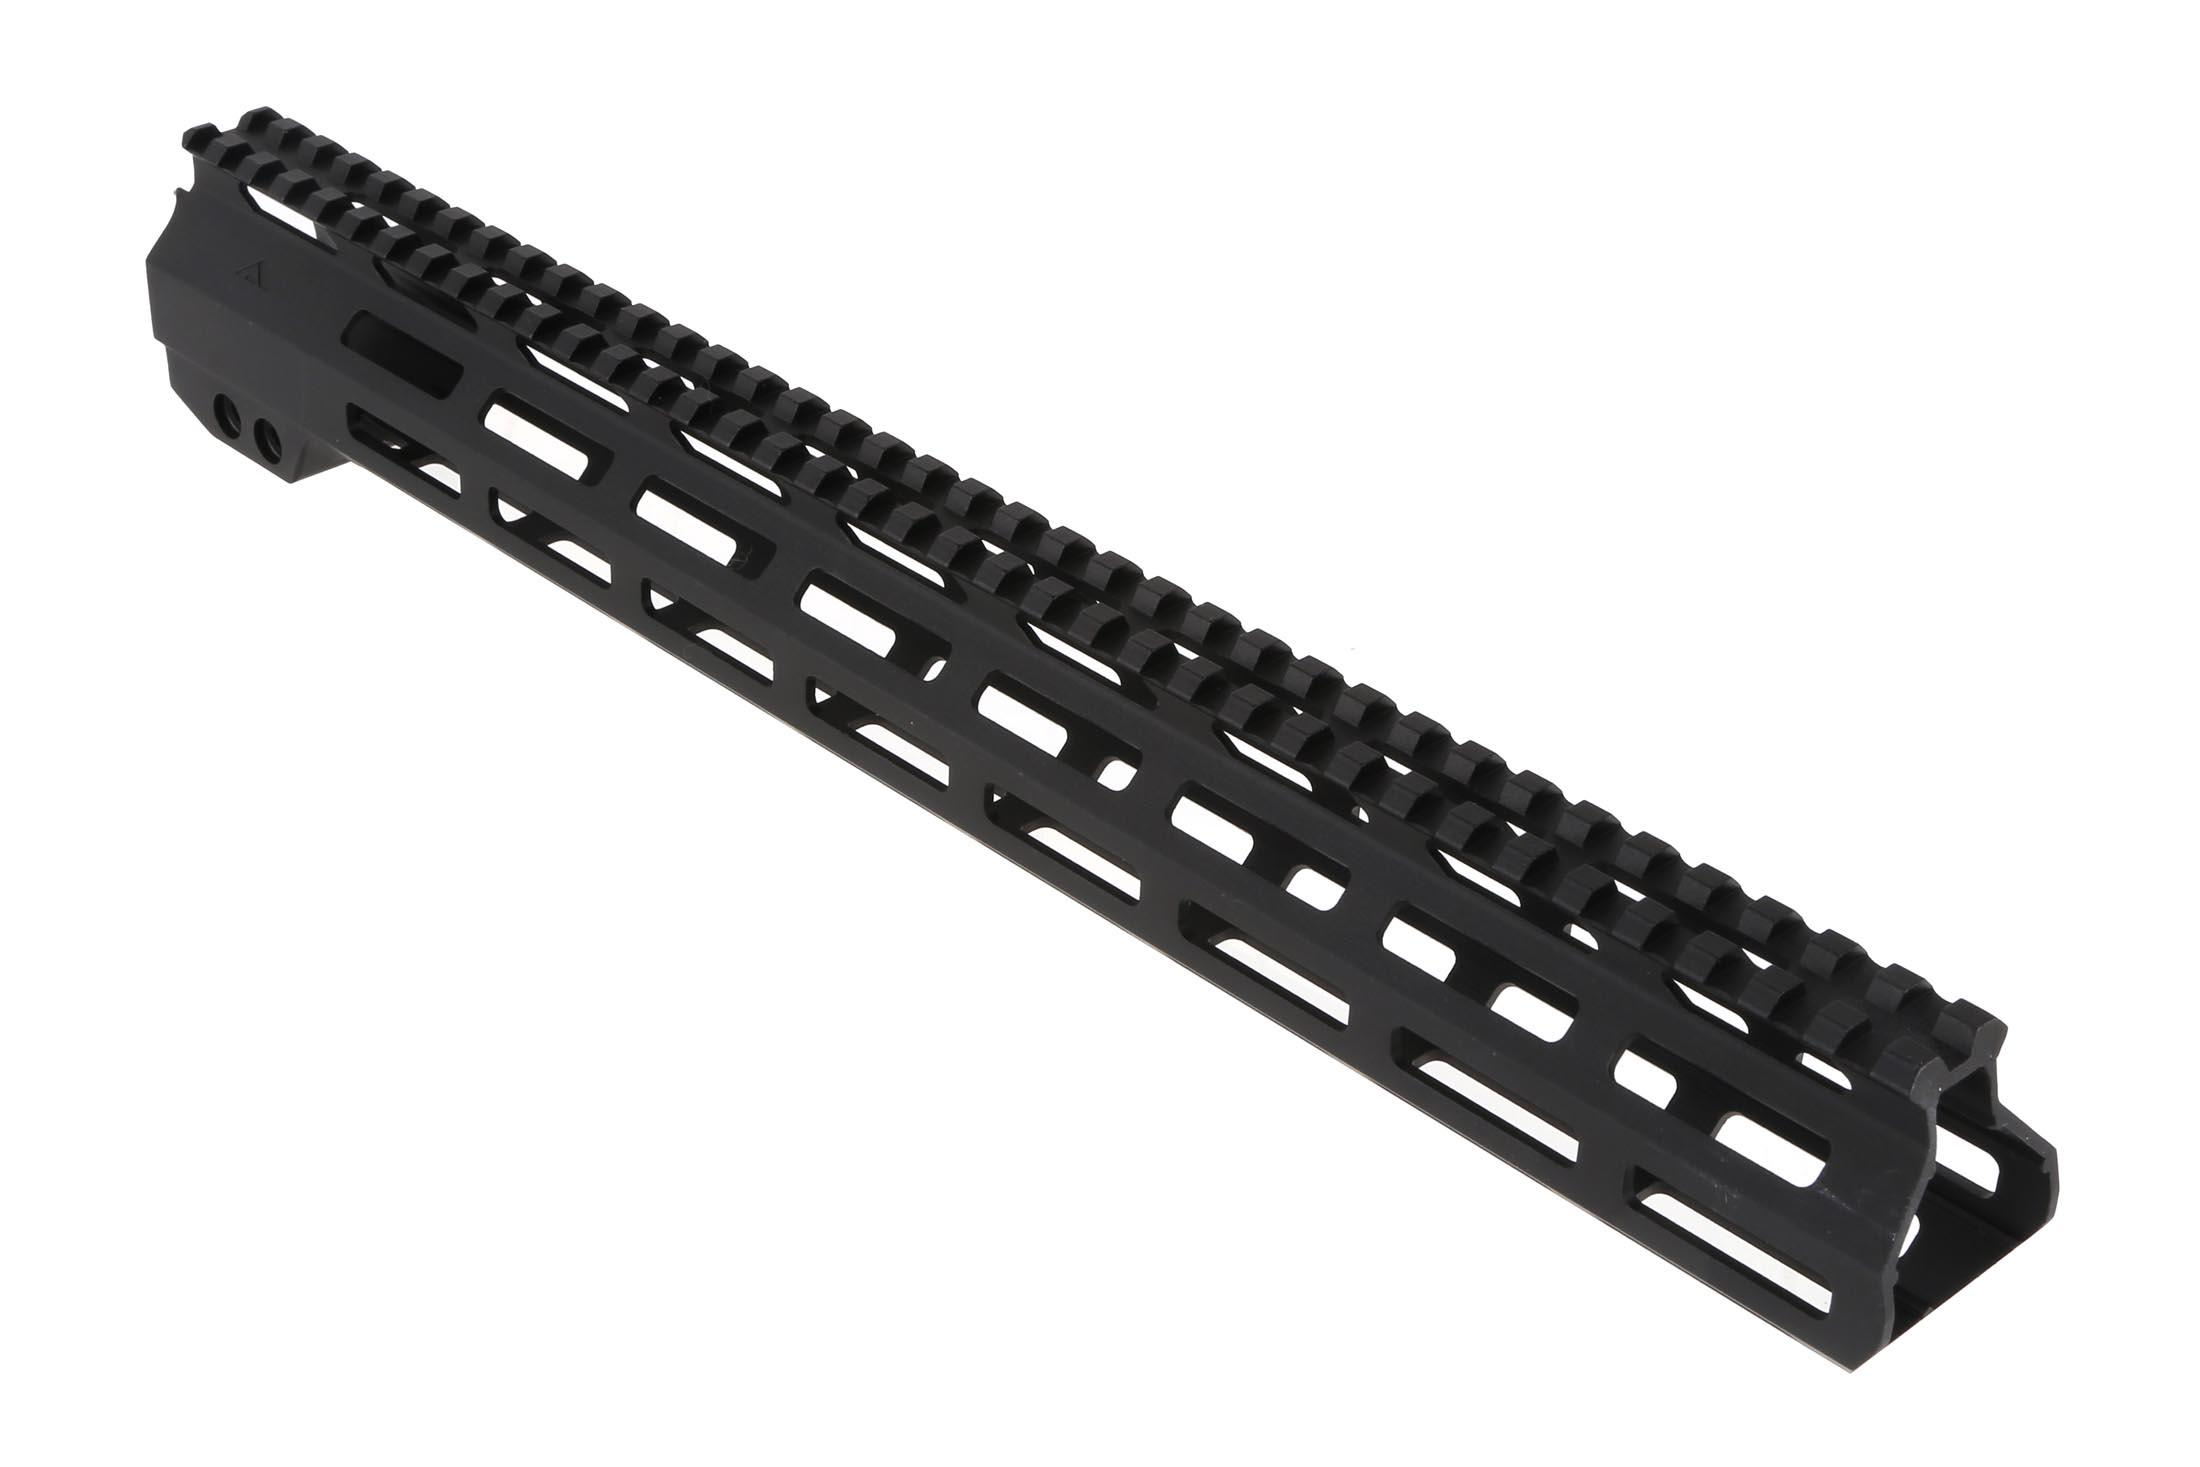 The Aim Sports AR-15 M-LOK handguard is machined from aluminum with lightening cuts to reduce weight